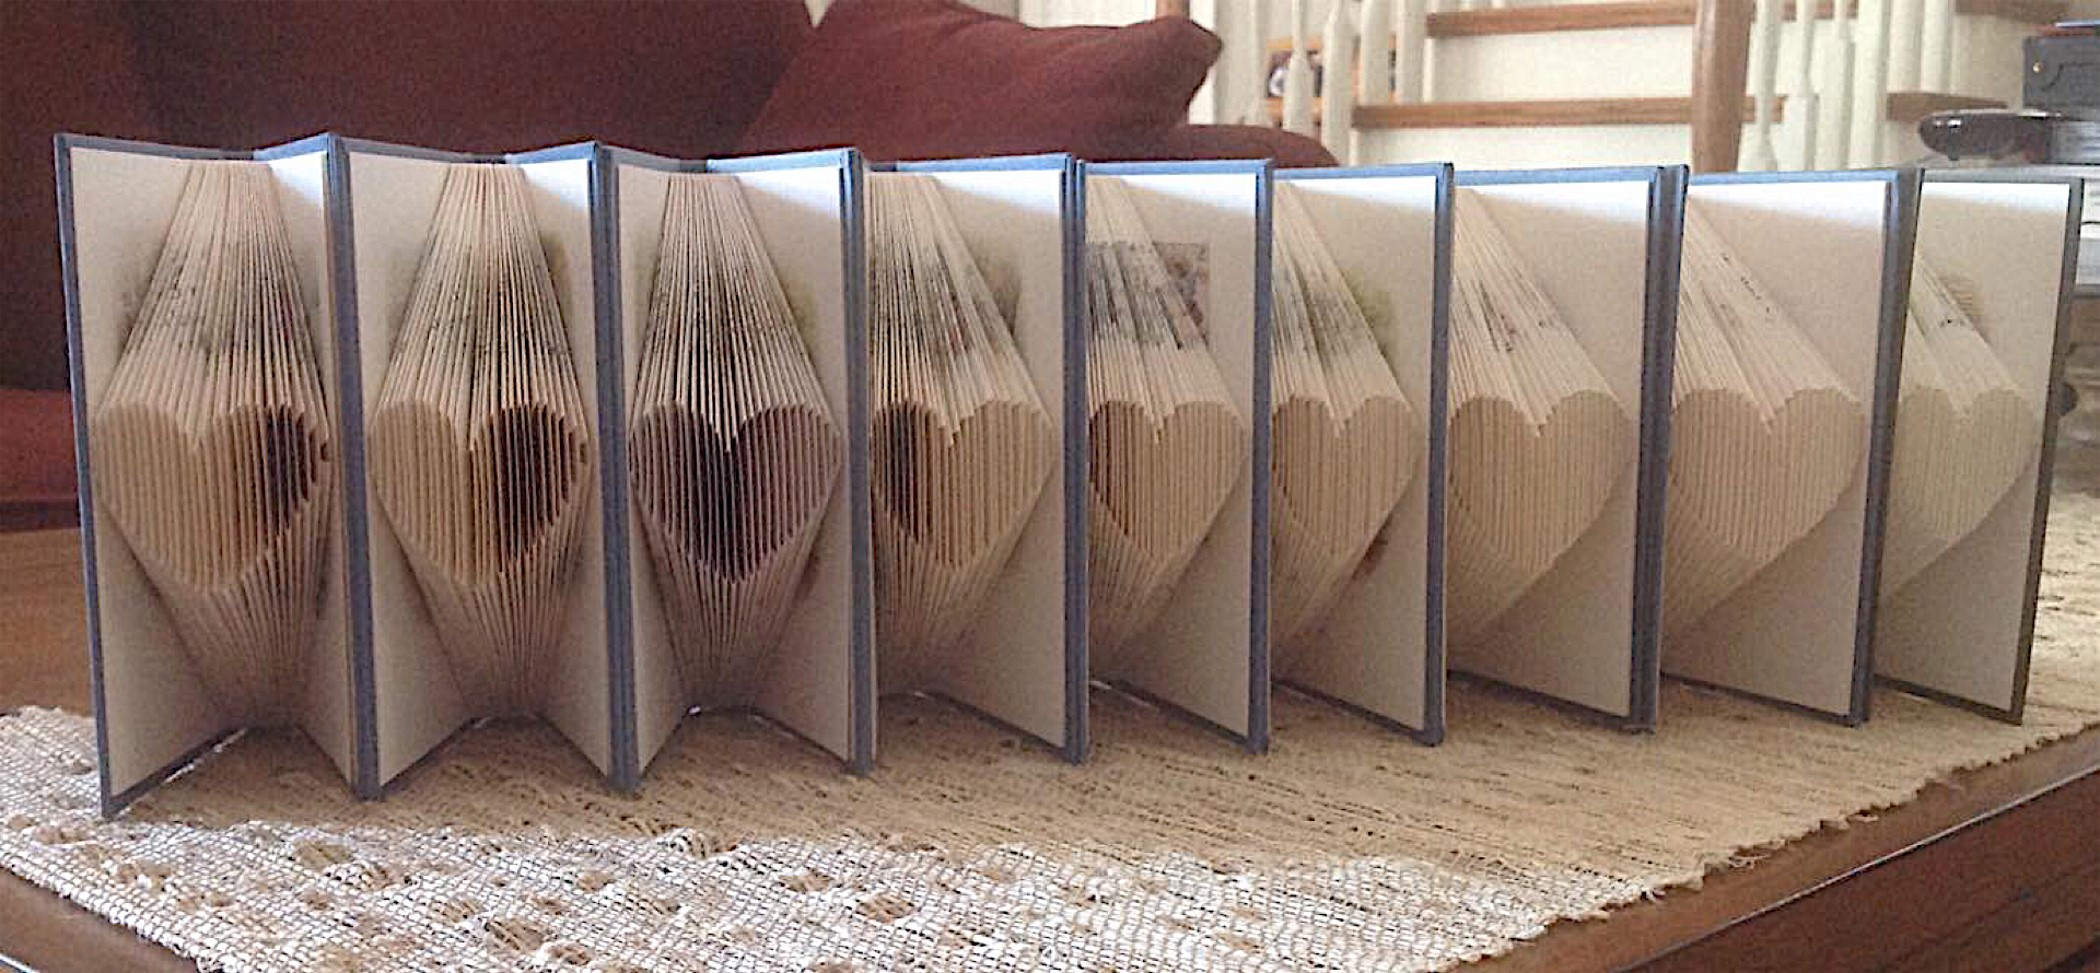 Books with pages folded into hearts